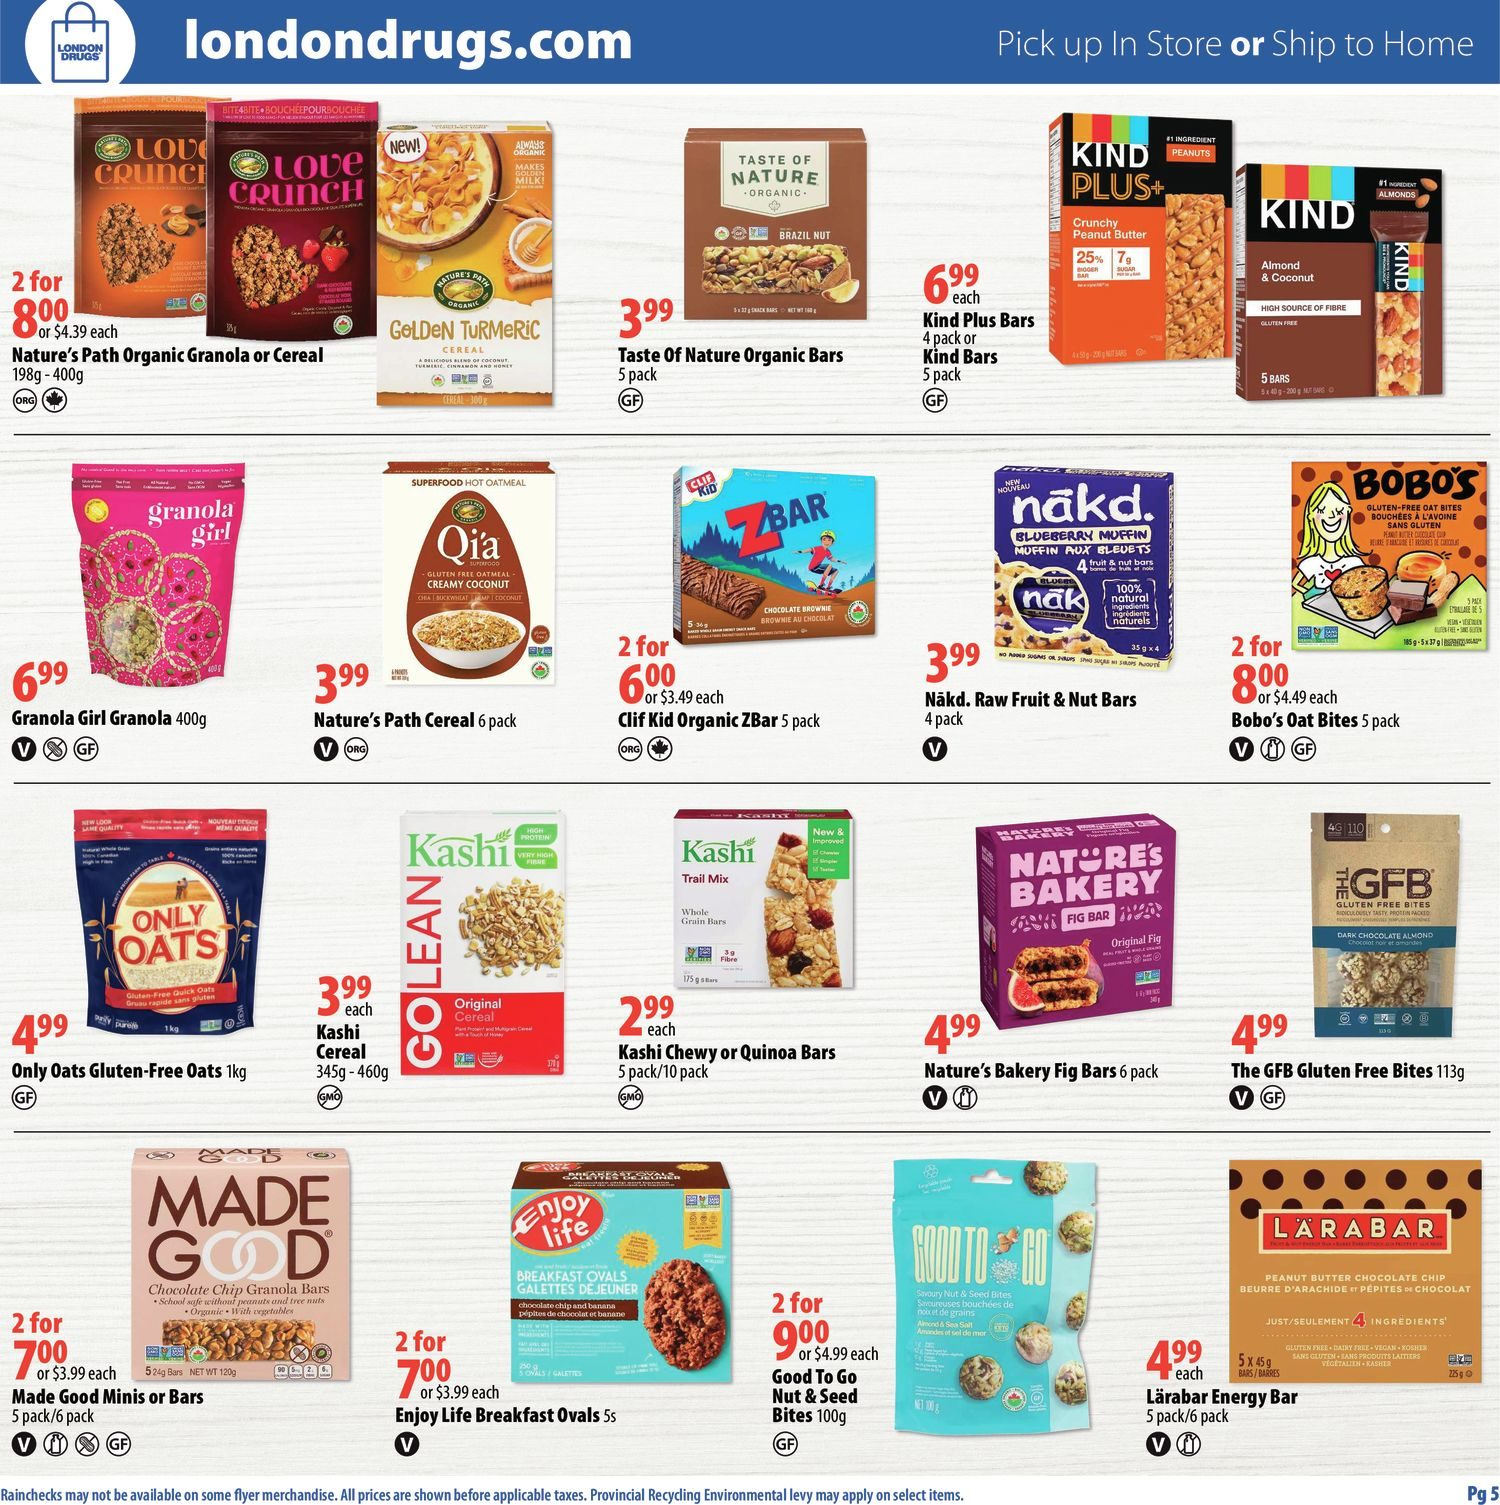 London Drugs - Mindful Choices - Choices To Support Your Lifestyle - Page 5